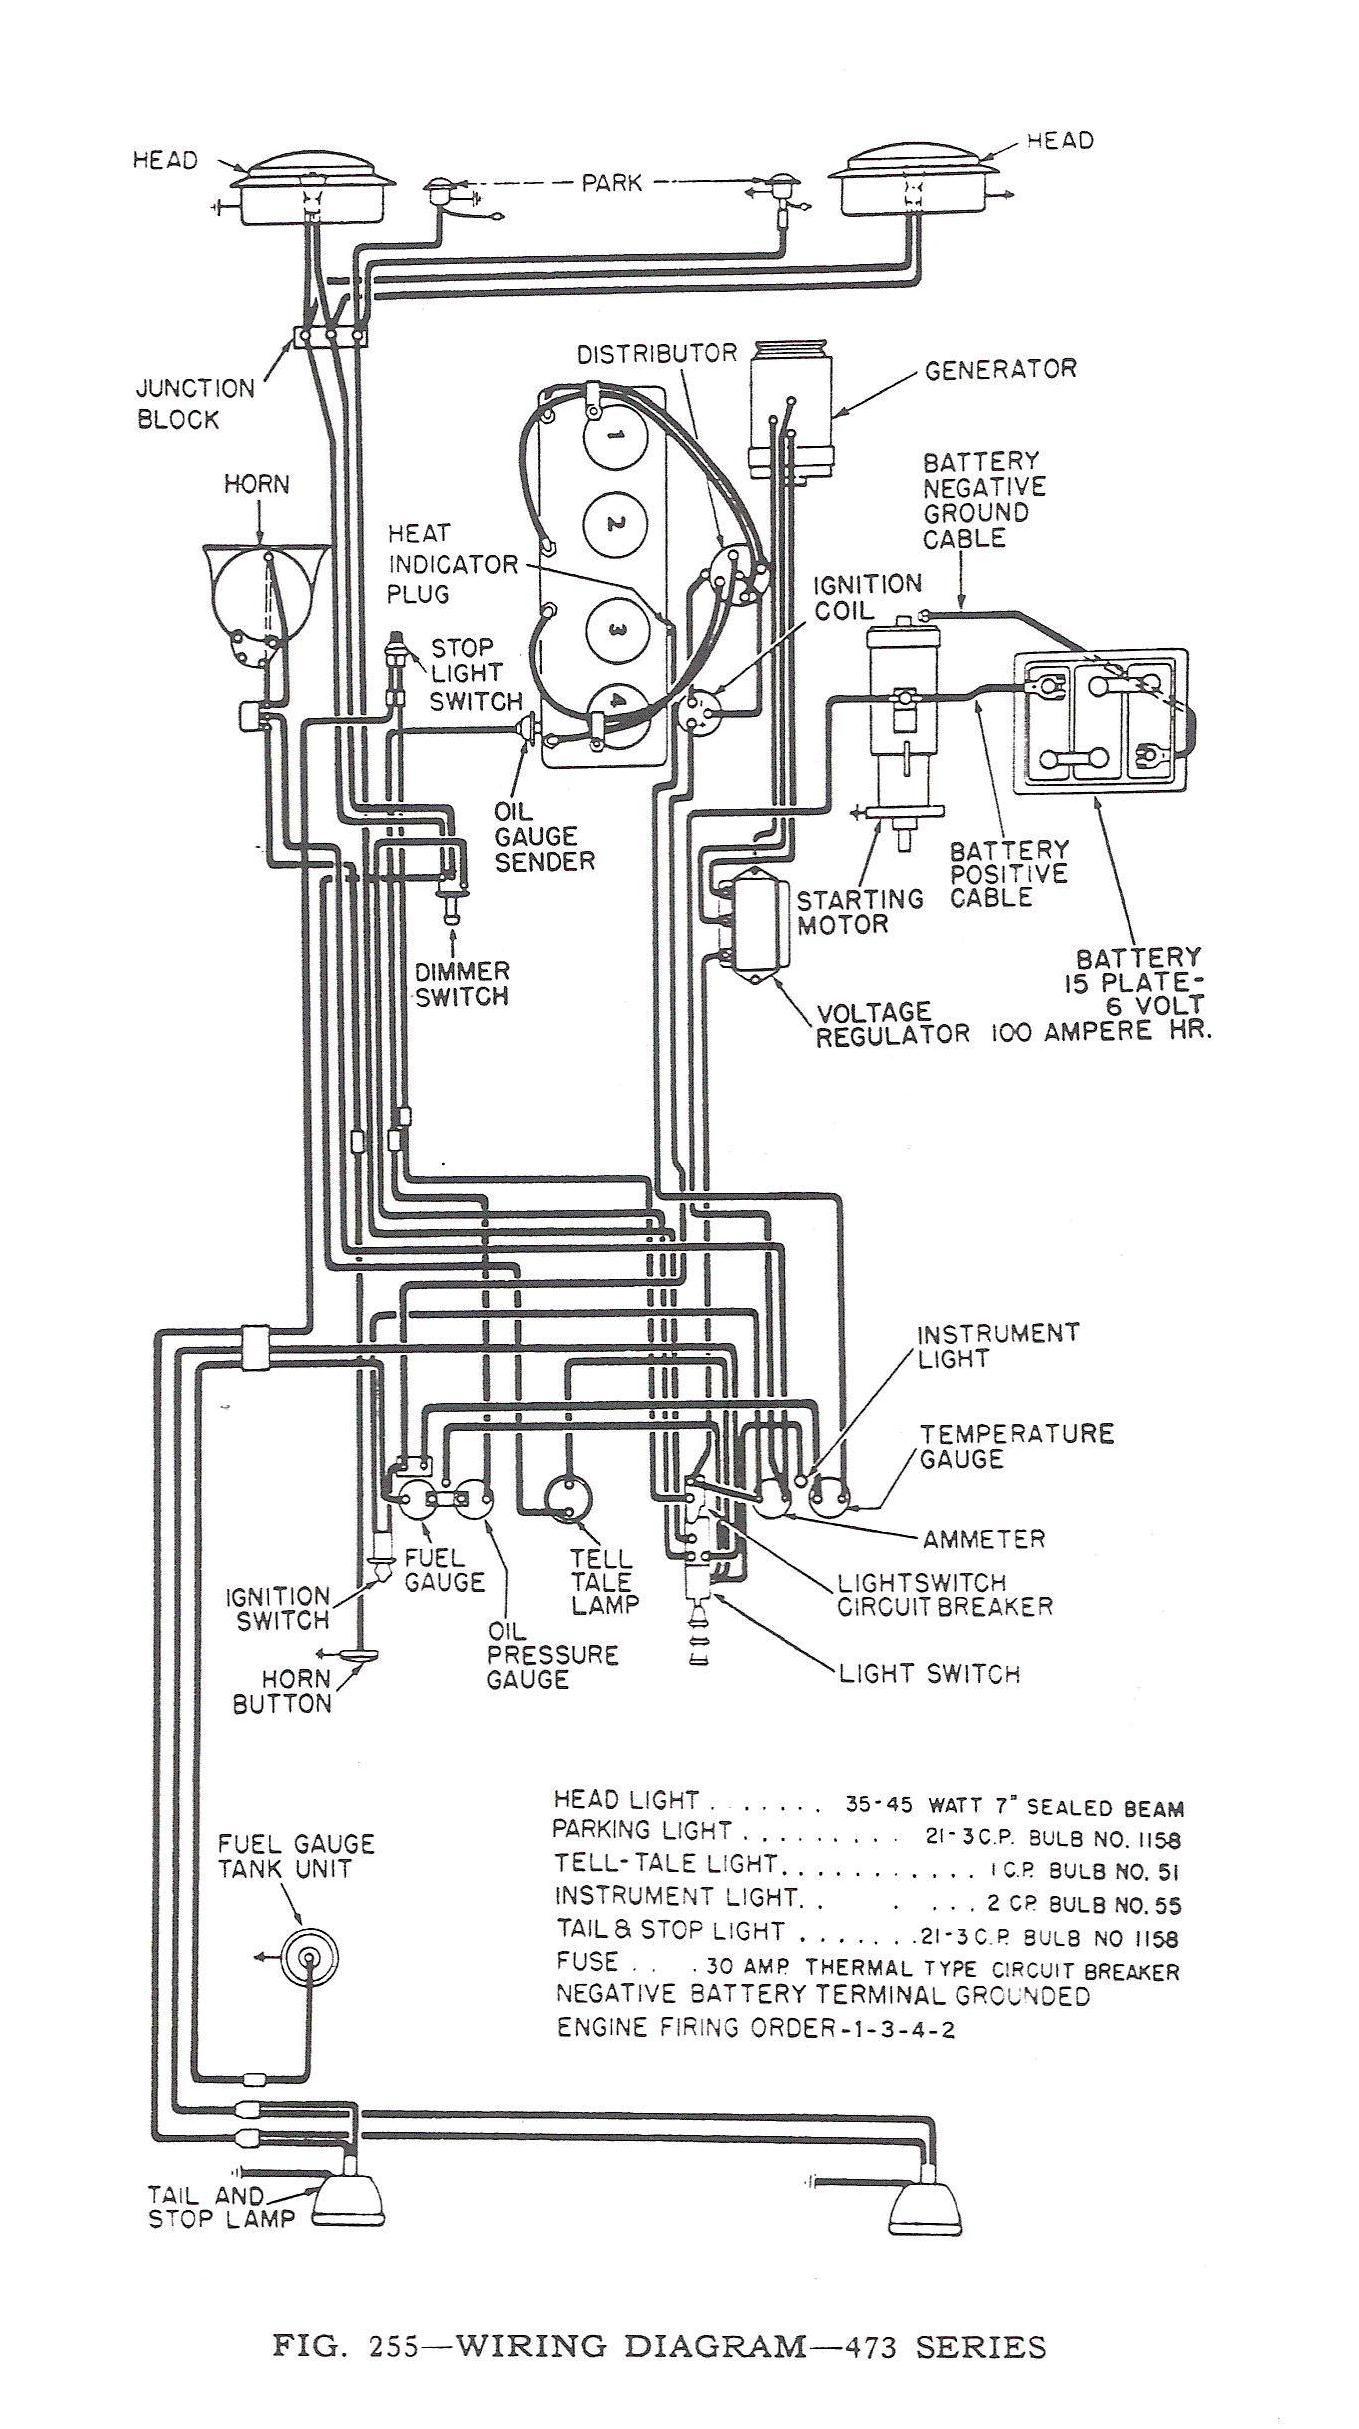 medium resolution of 1952 jeep series 473 wiring diagrams google search